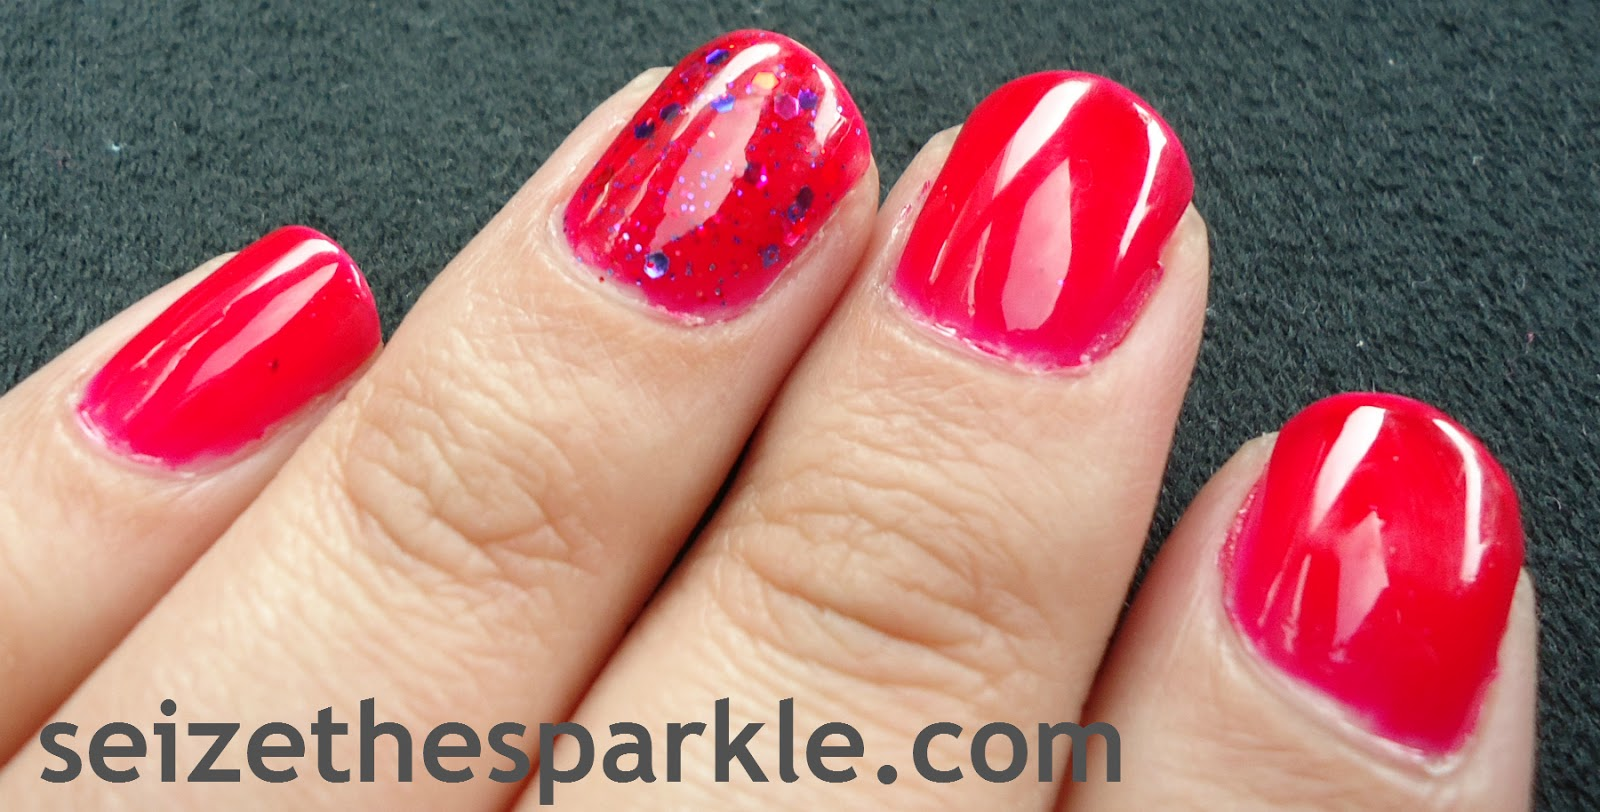 L'Oreal Jolly Lolly Accent Manicure